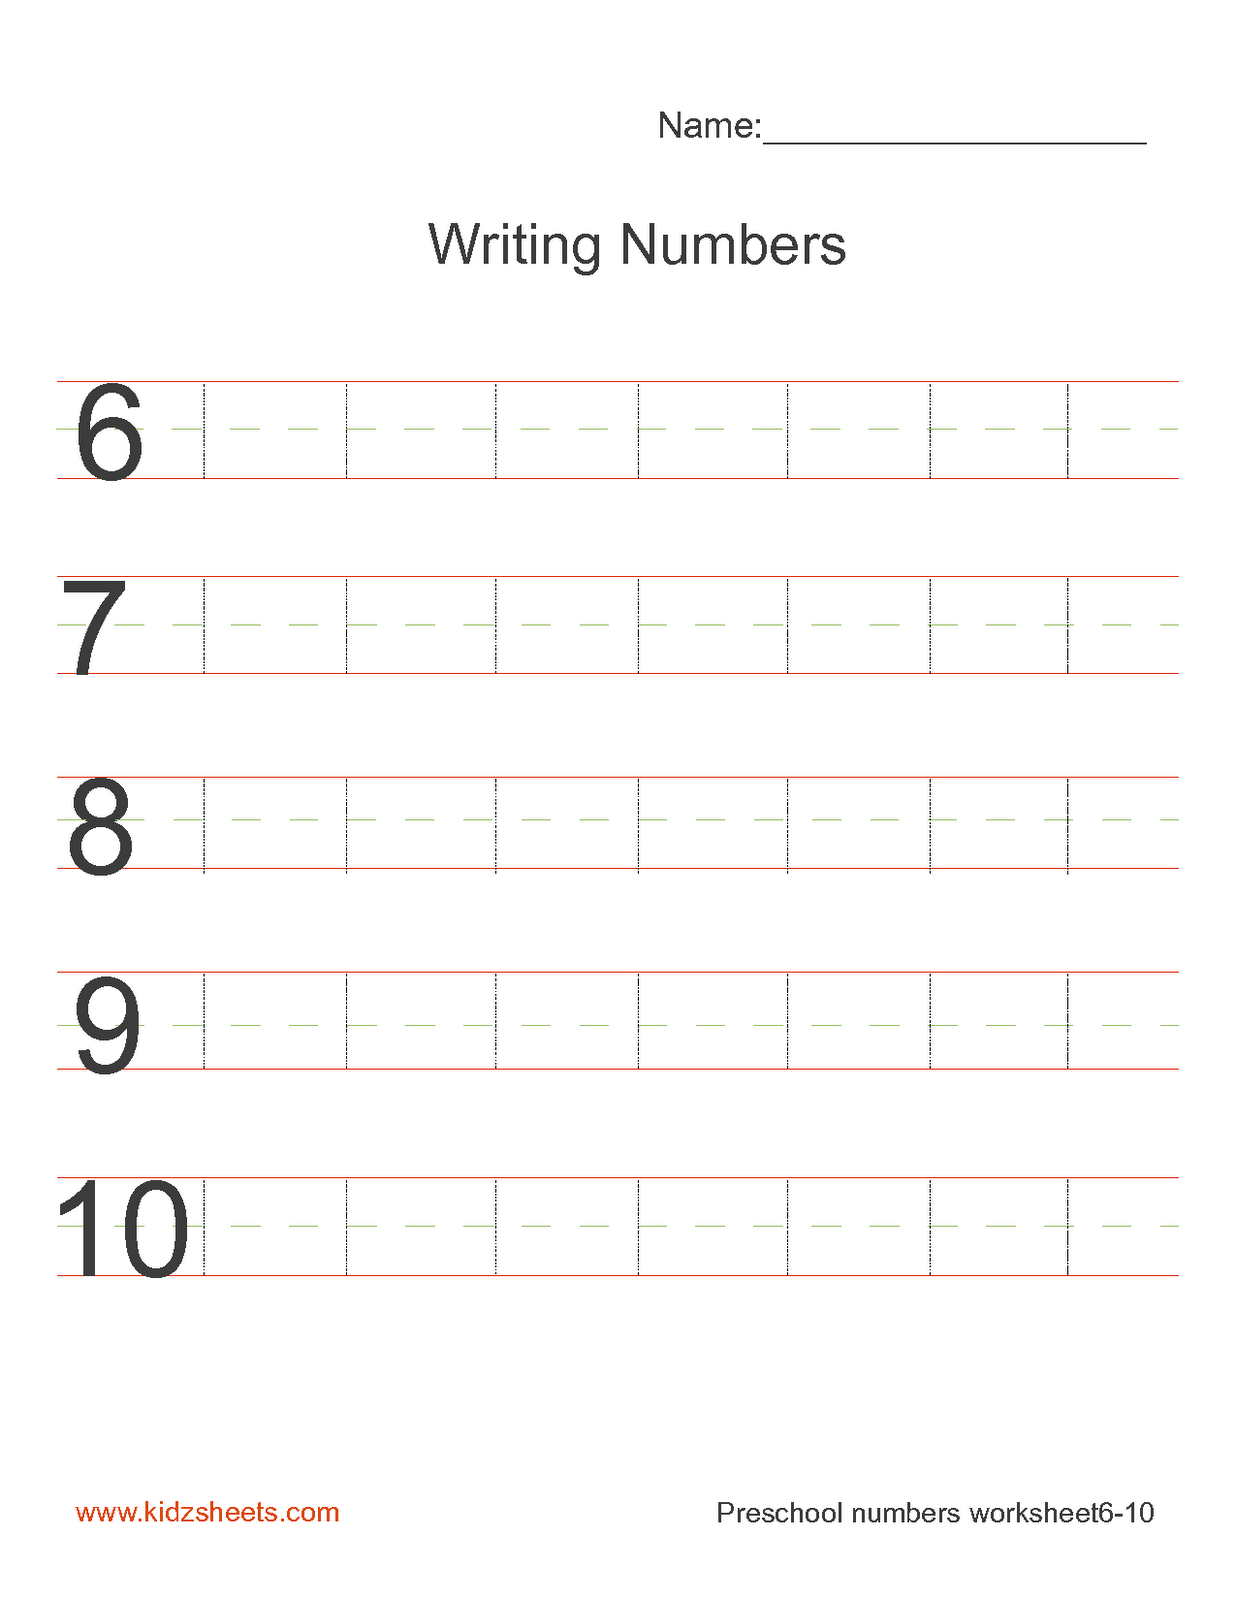 worksheet Number Handwriting Worksheets kidz worksheets preschool writing numbers worksheet2 free printable kids maths worksheets